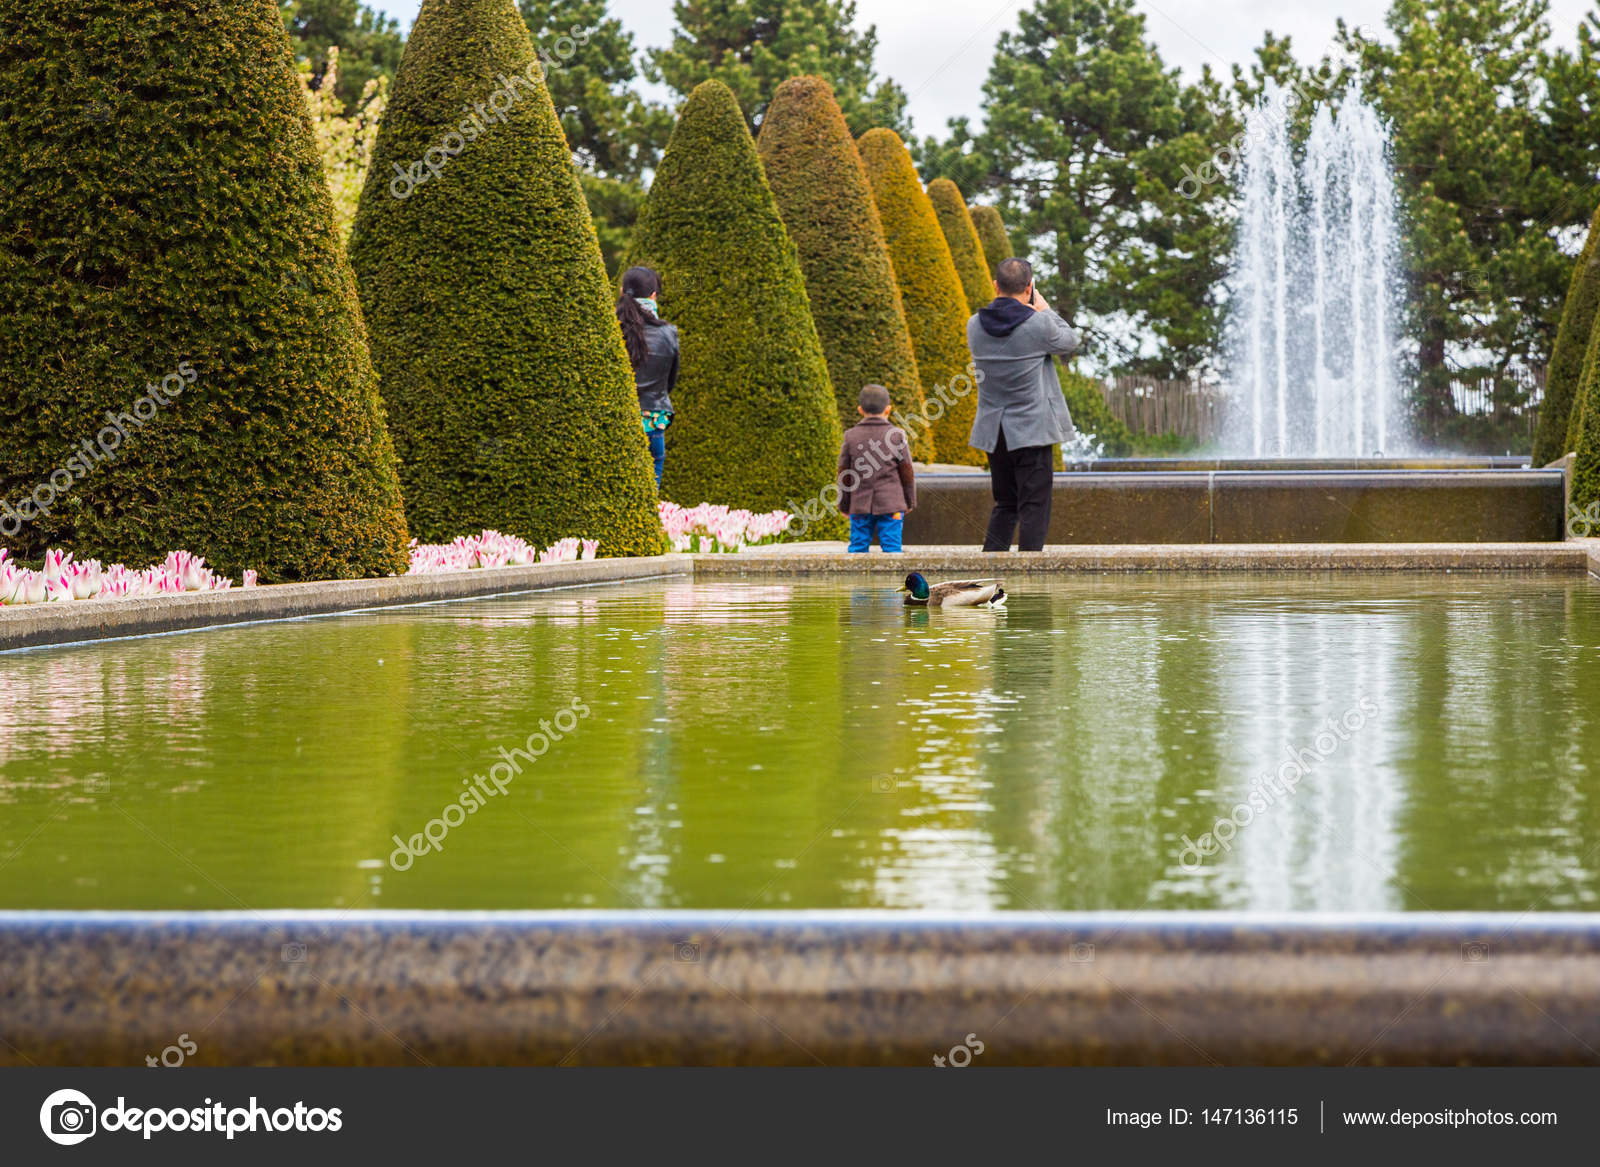 Family Of Tourists In Keukenhof Park Look At The Ducks Swimming In The Pond And Take A Picture Of The Fountain Mom Dad And Their Son In The Park